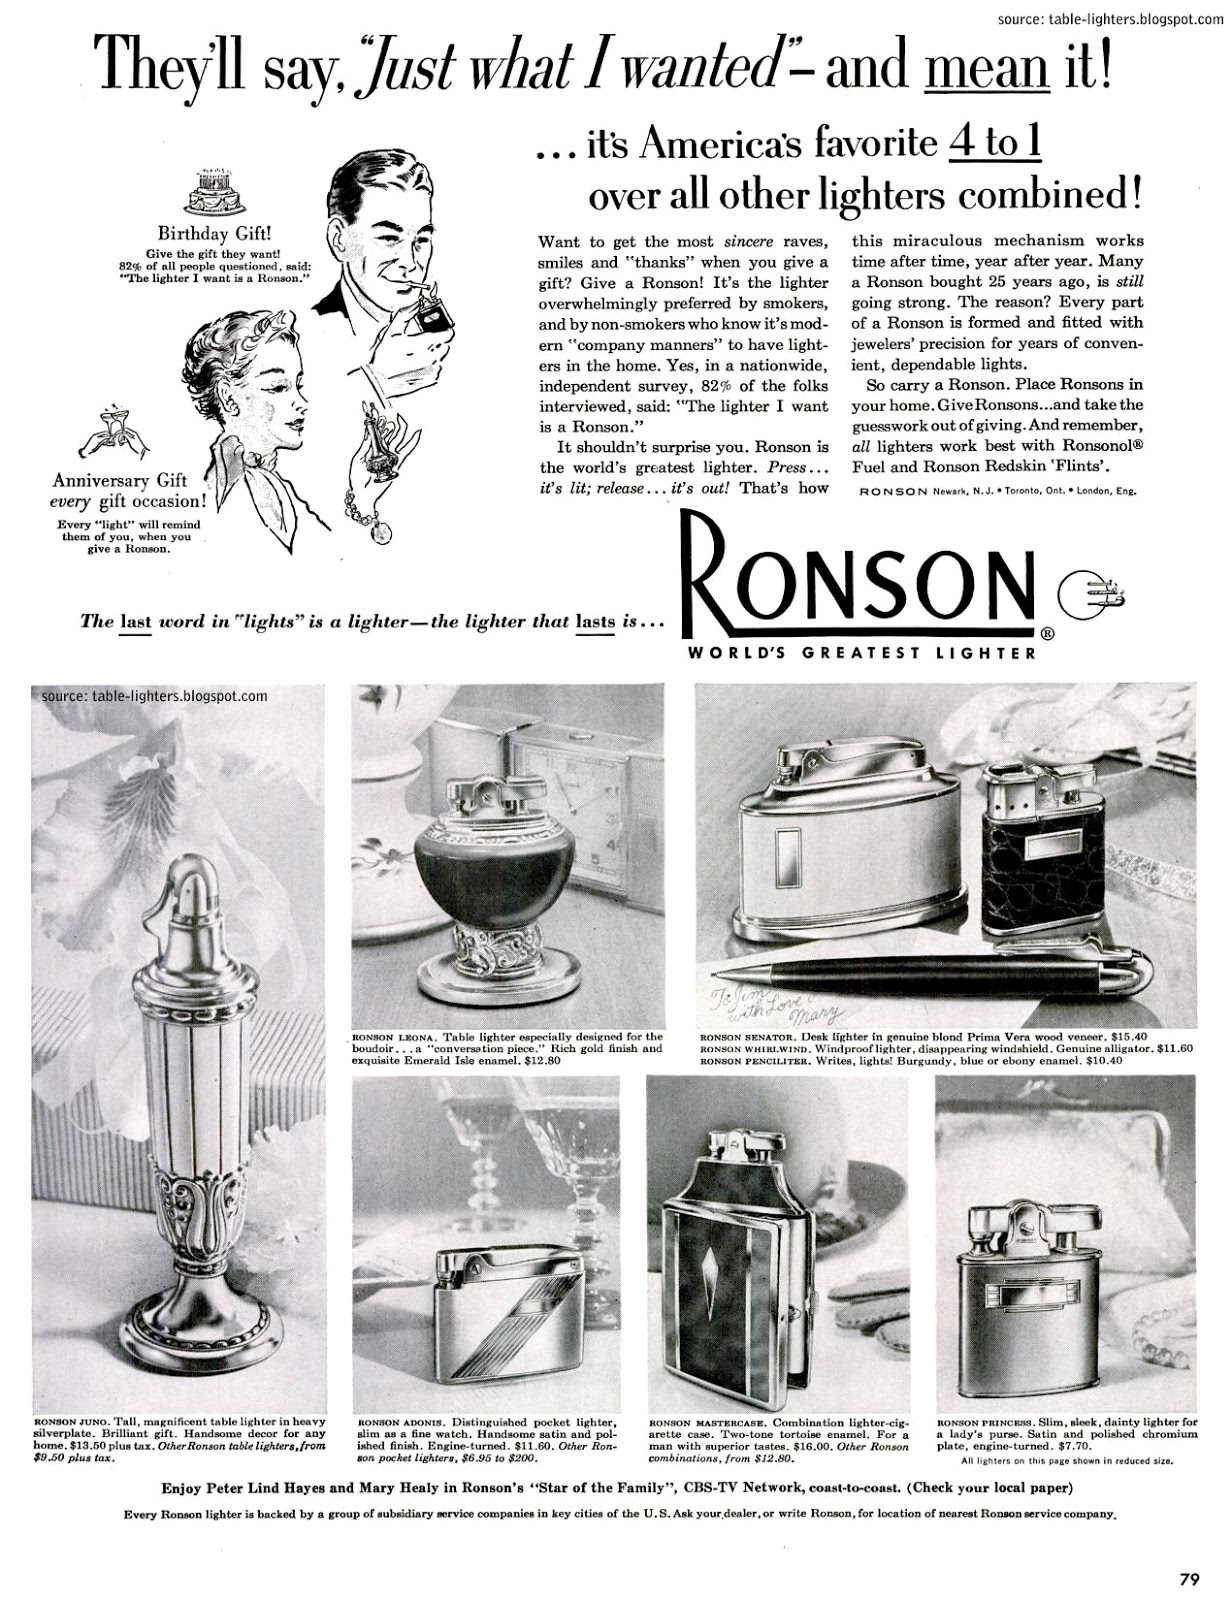 Ronson Food Processor Blender RFP600C kitchen Food